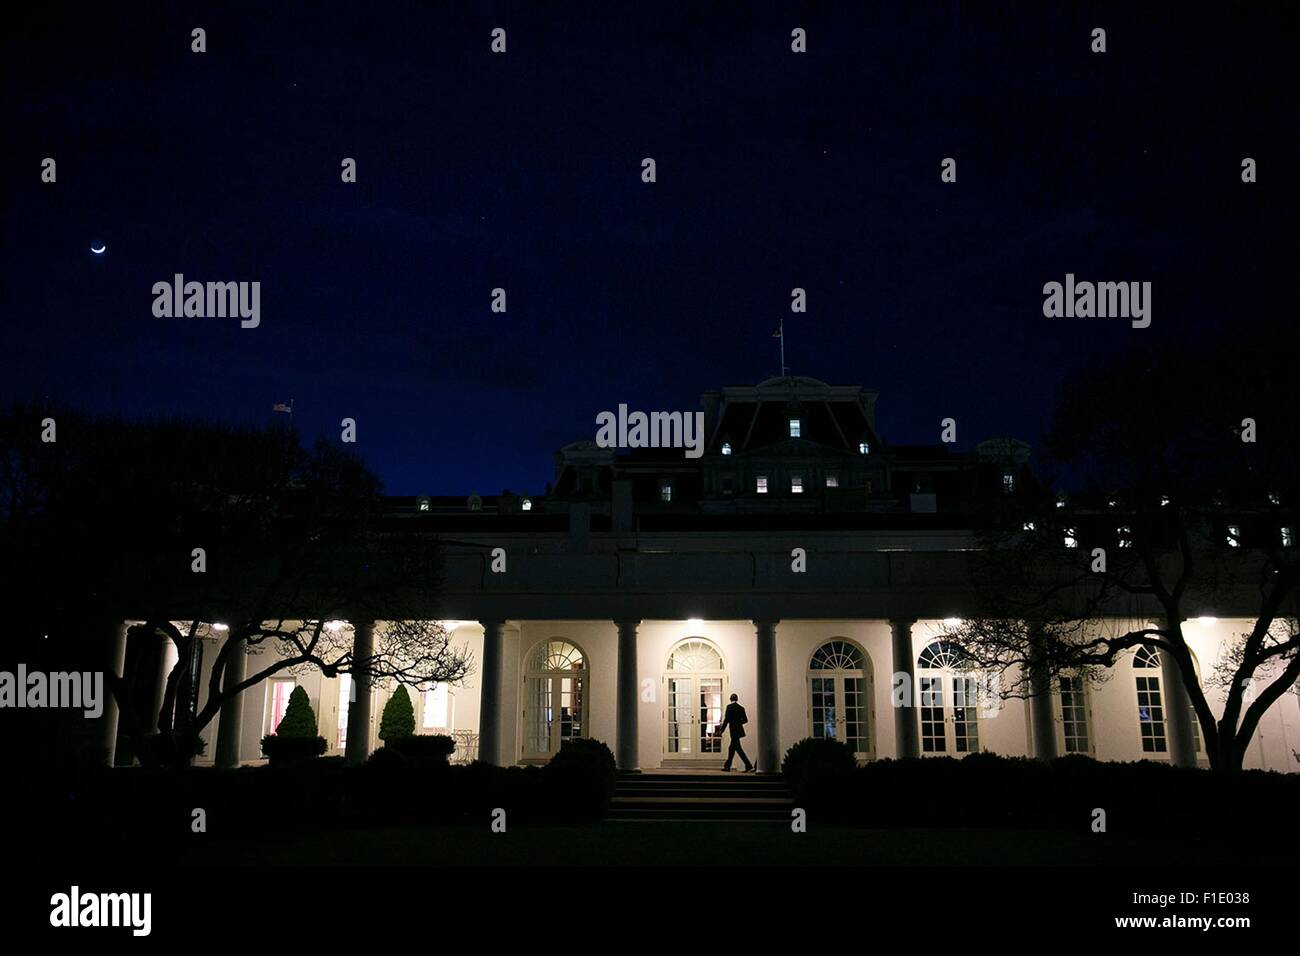 where is the oval office. U.S. President Barack Obama Walks Along The Colonnade To Oval Office Of White House Late Night January 22, 2015 In Washington, DC. Where Is